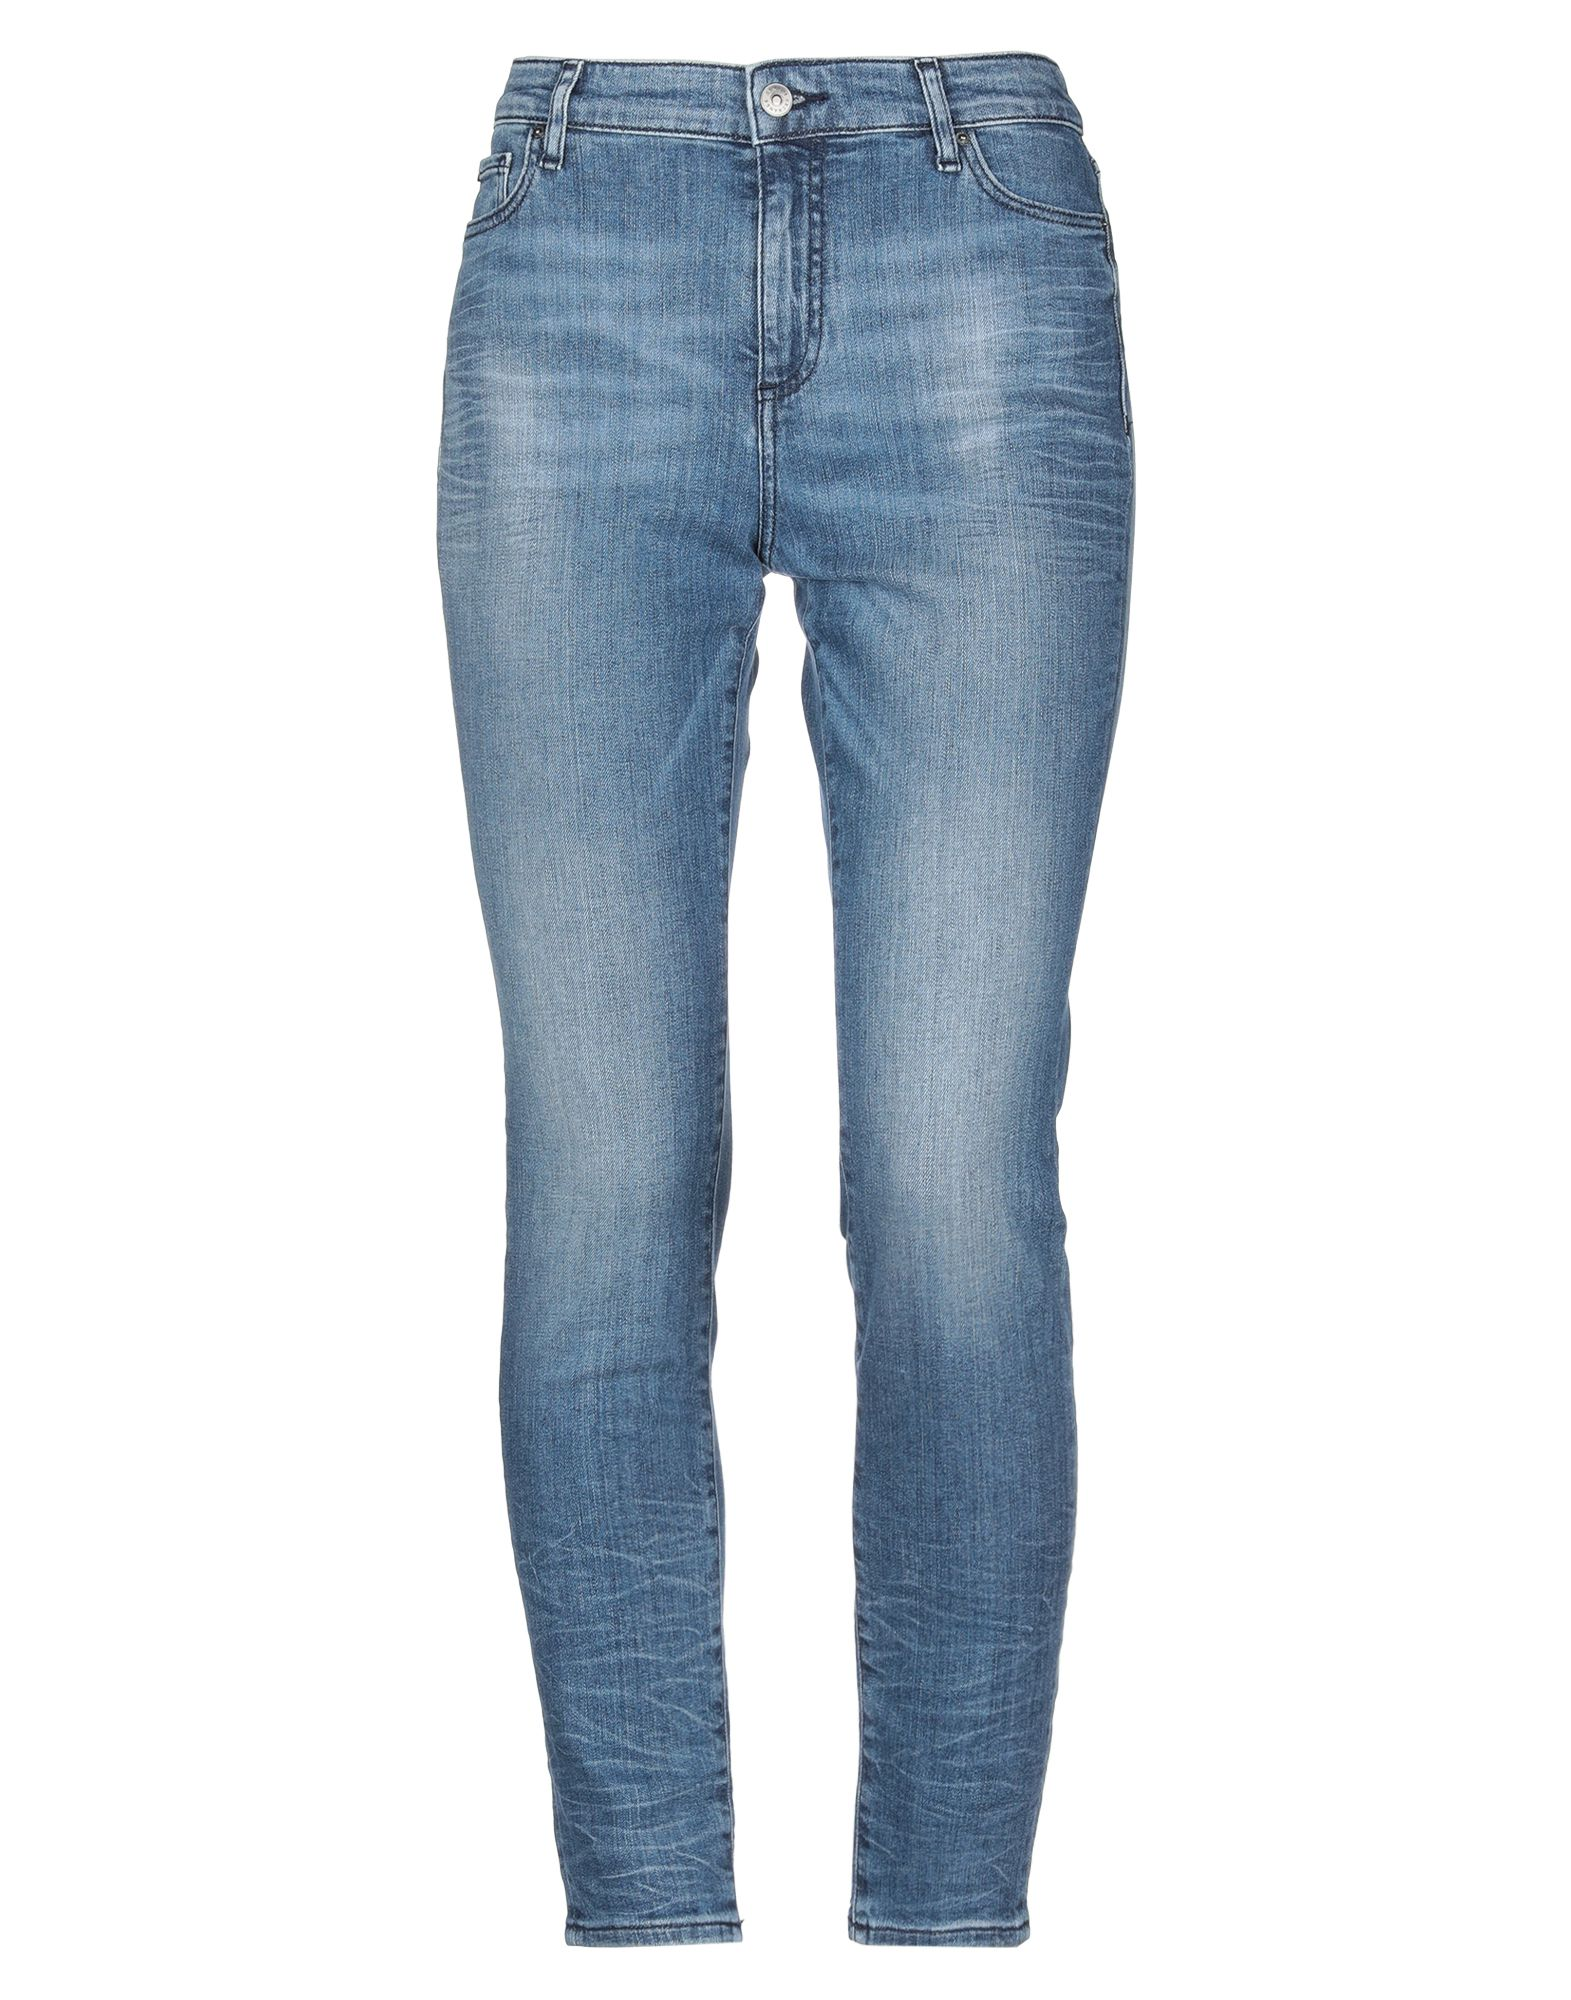 ARMANI EXCHANGE Denim pants - Item 42774871